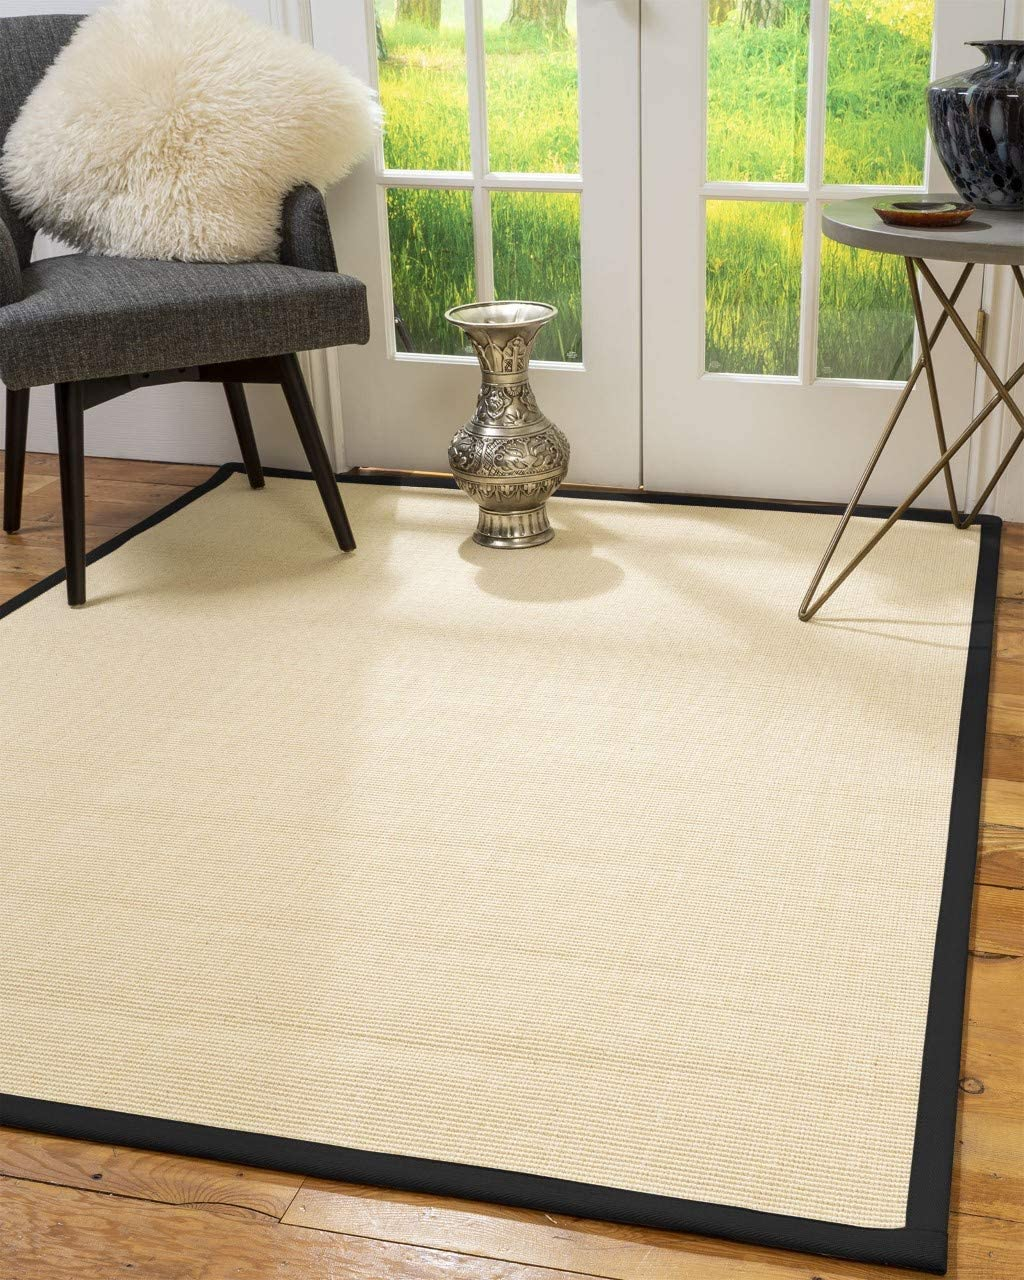 Natural Area Rugs 100 Natural Fiber Handmade Deco, Beige Sisal Rug, 8 x 10 Black Border